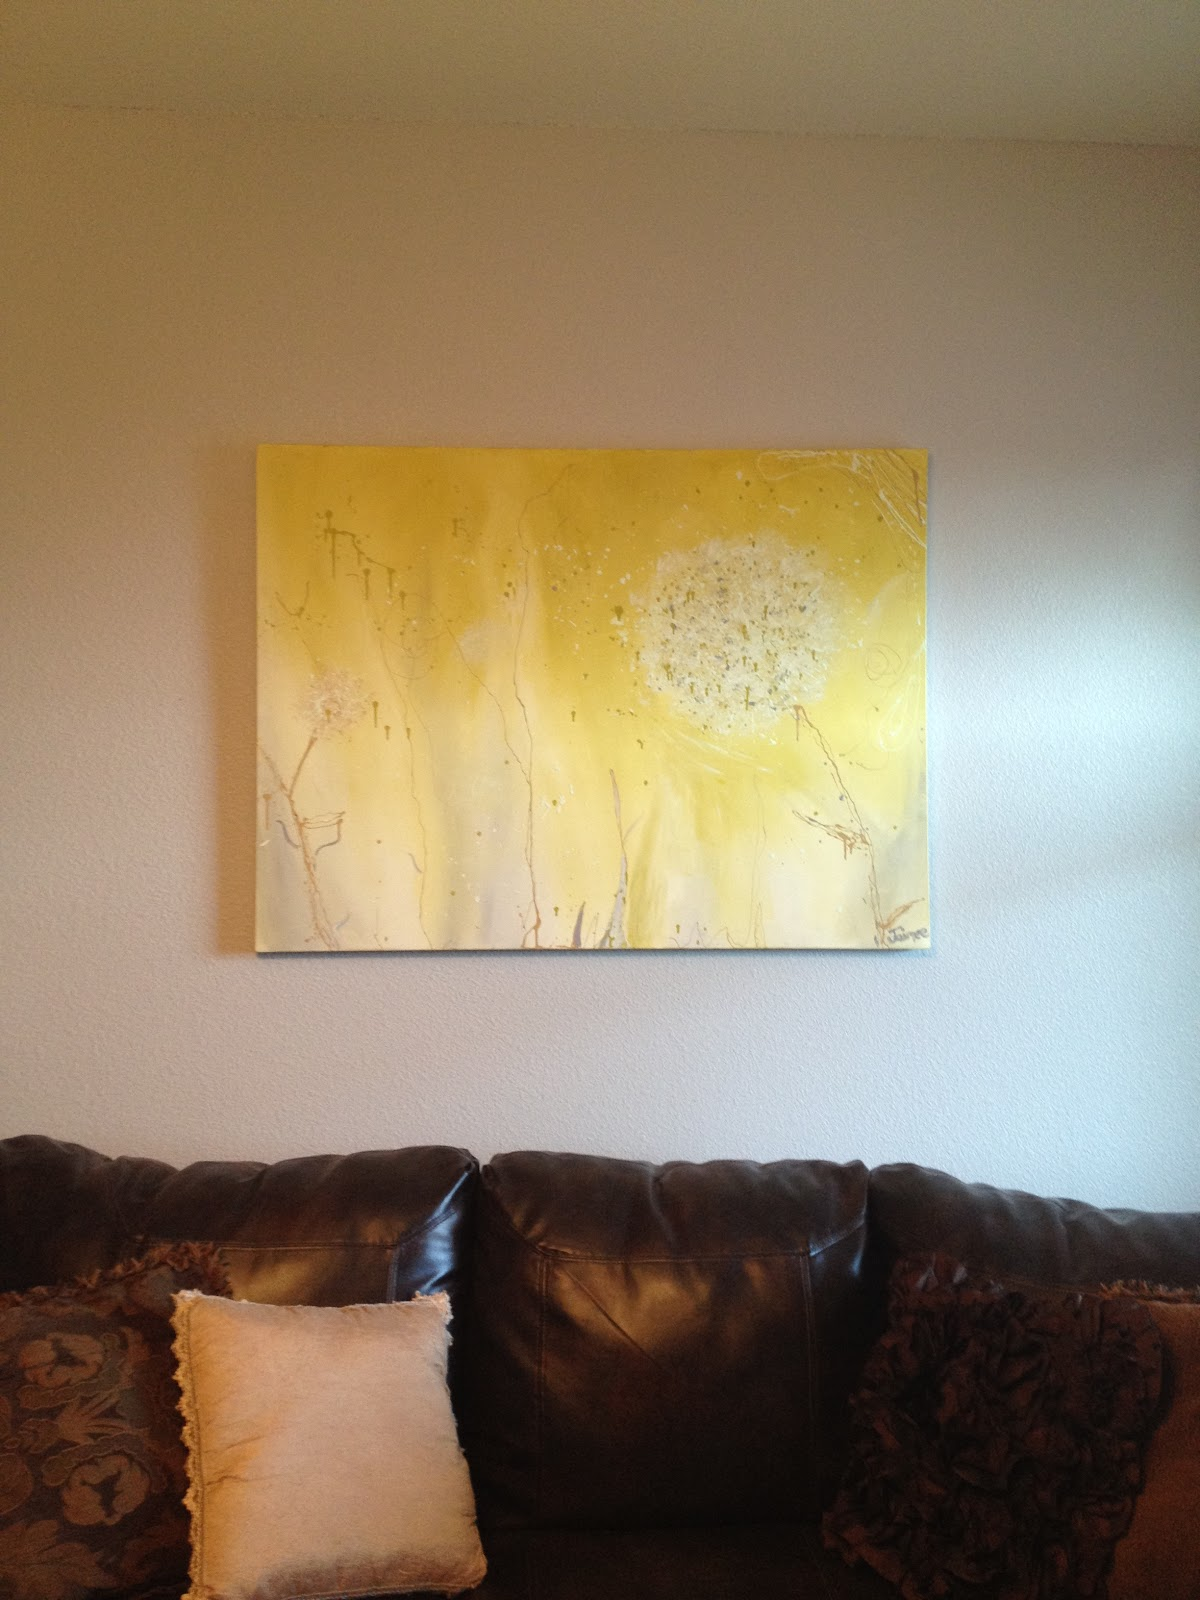 Weigle Wed and Southern Bred: DIY large scale faux frame for ...